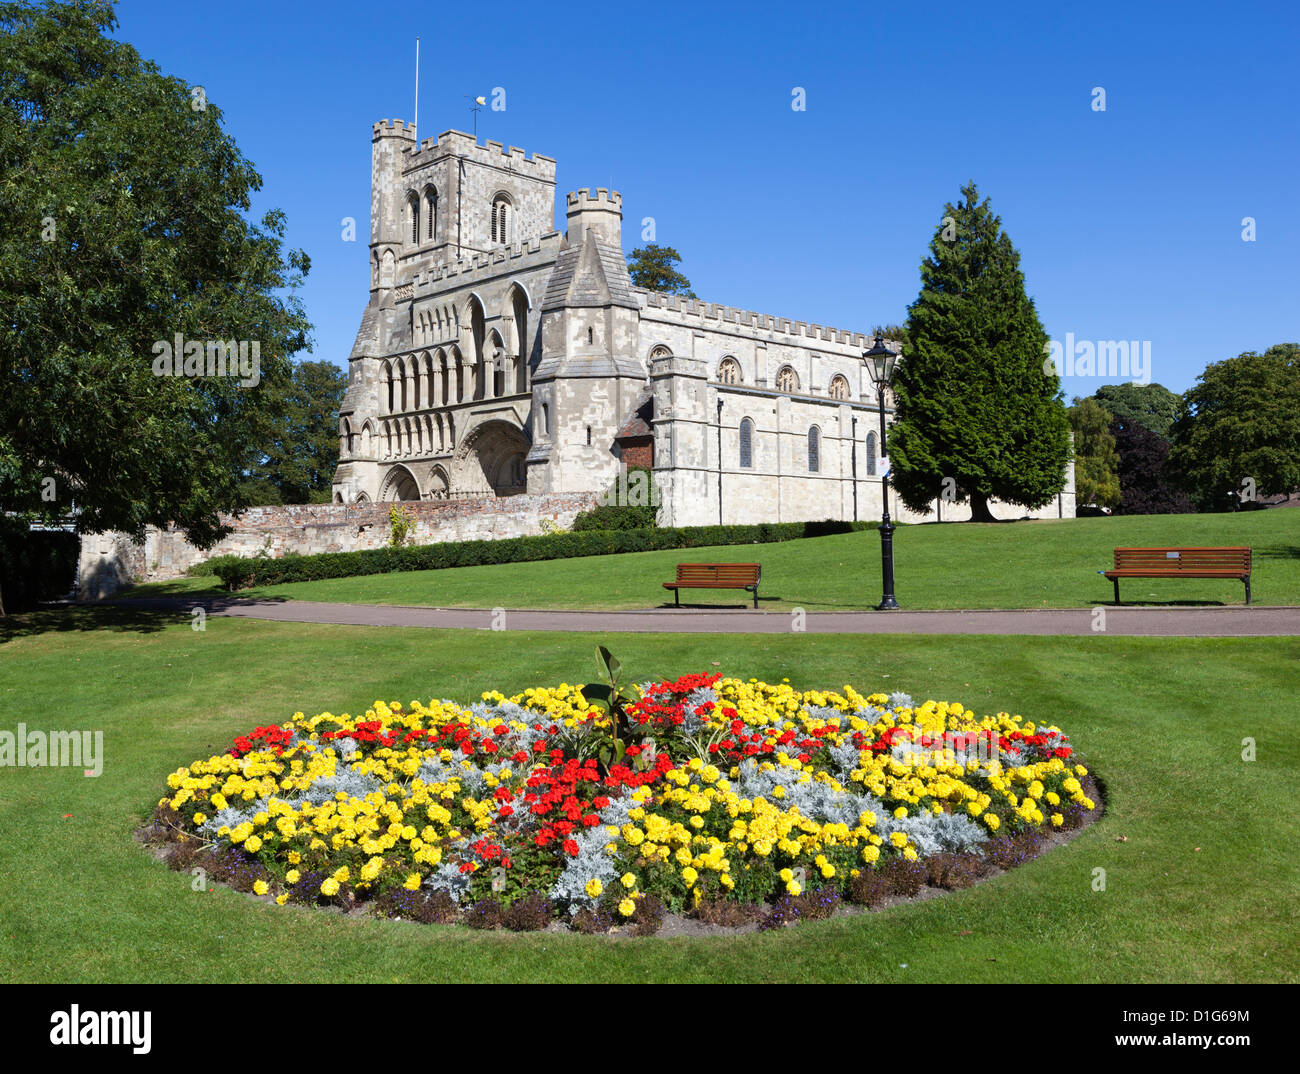 Priory Gardens and Priory Church of St. Peter, Dunstable, Bedfordshire, England, United Kingdom, Europe - Stock Image